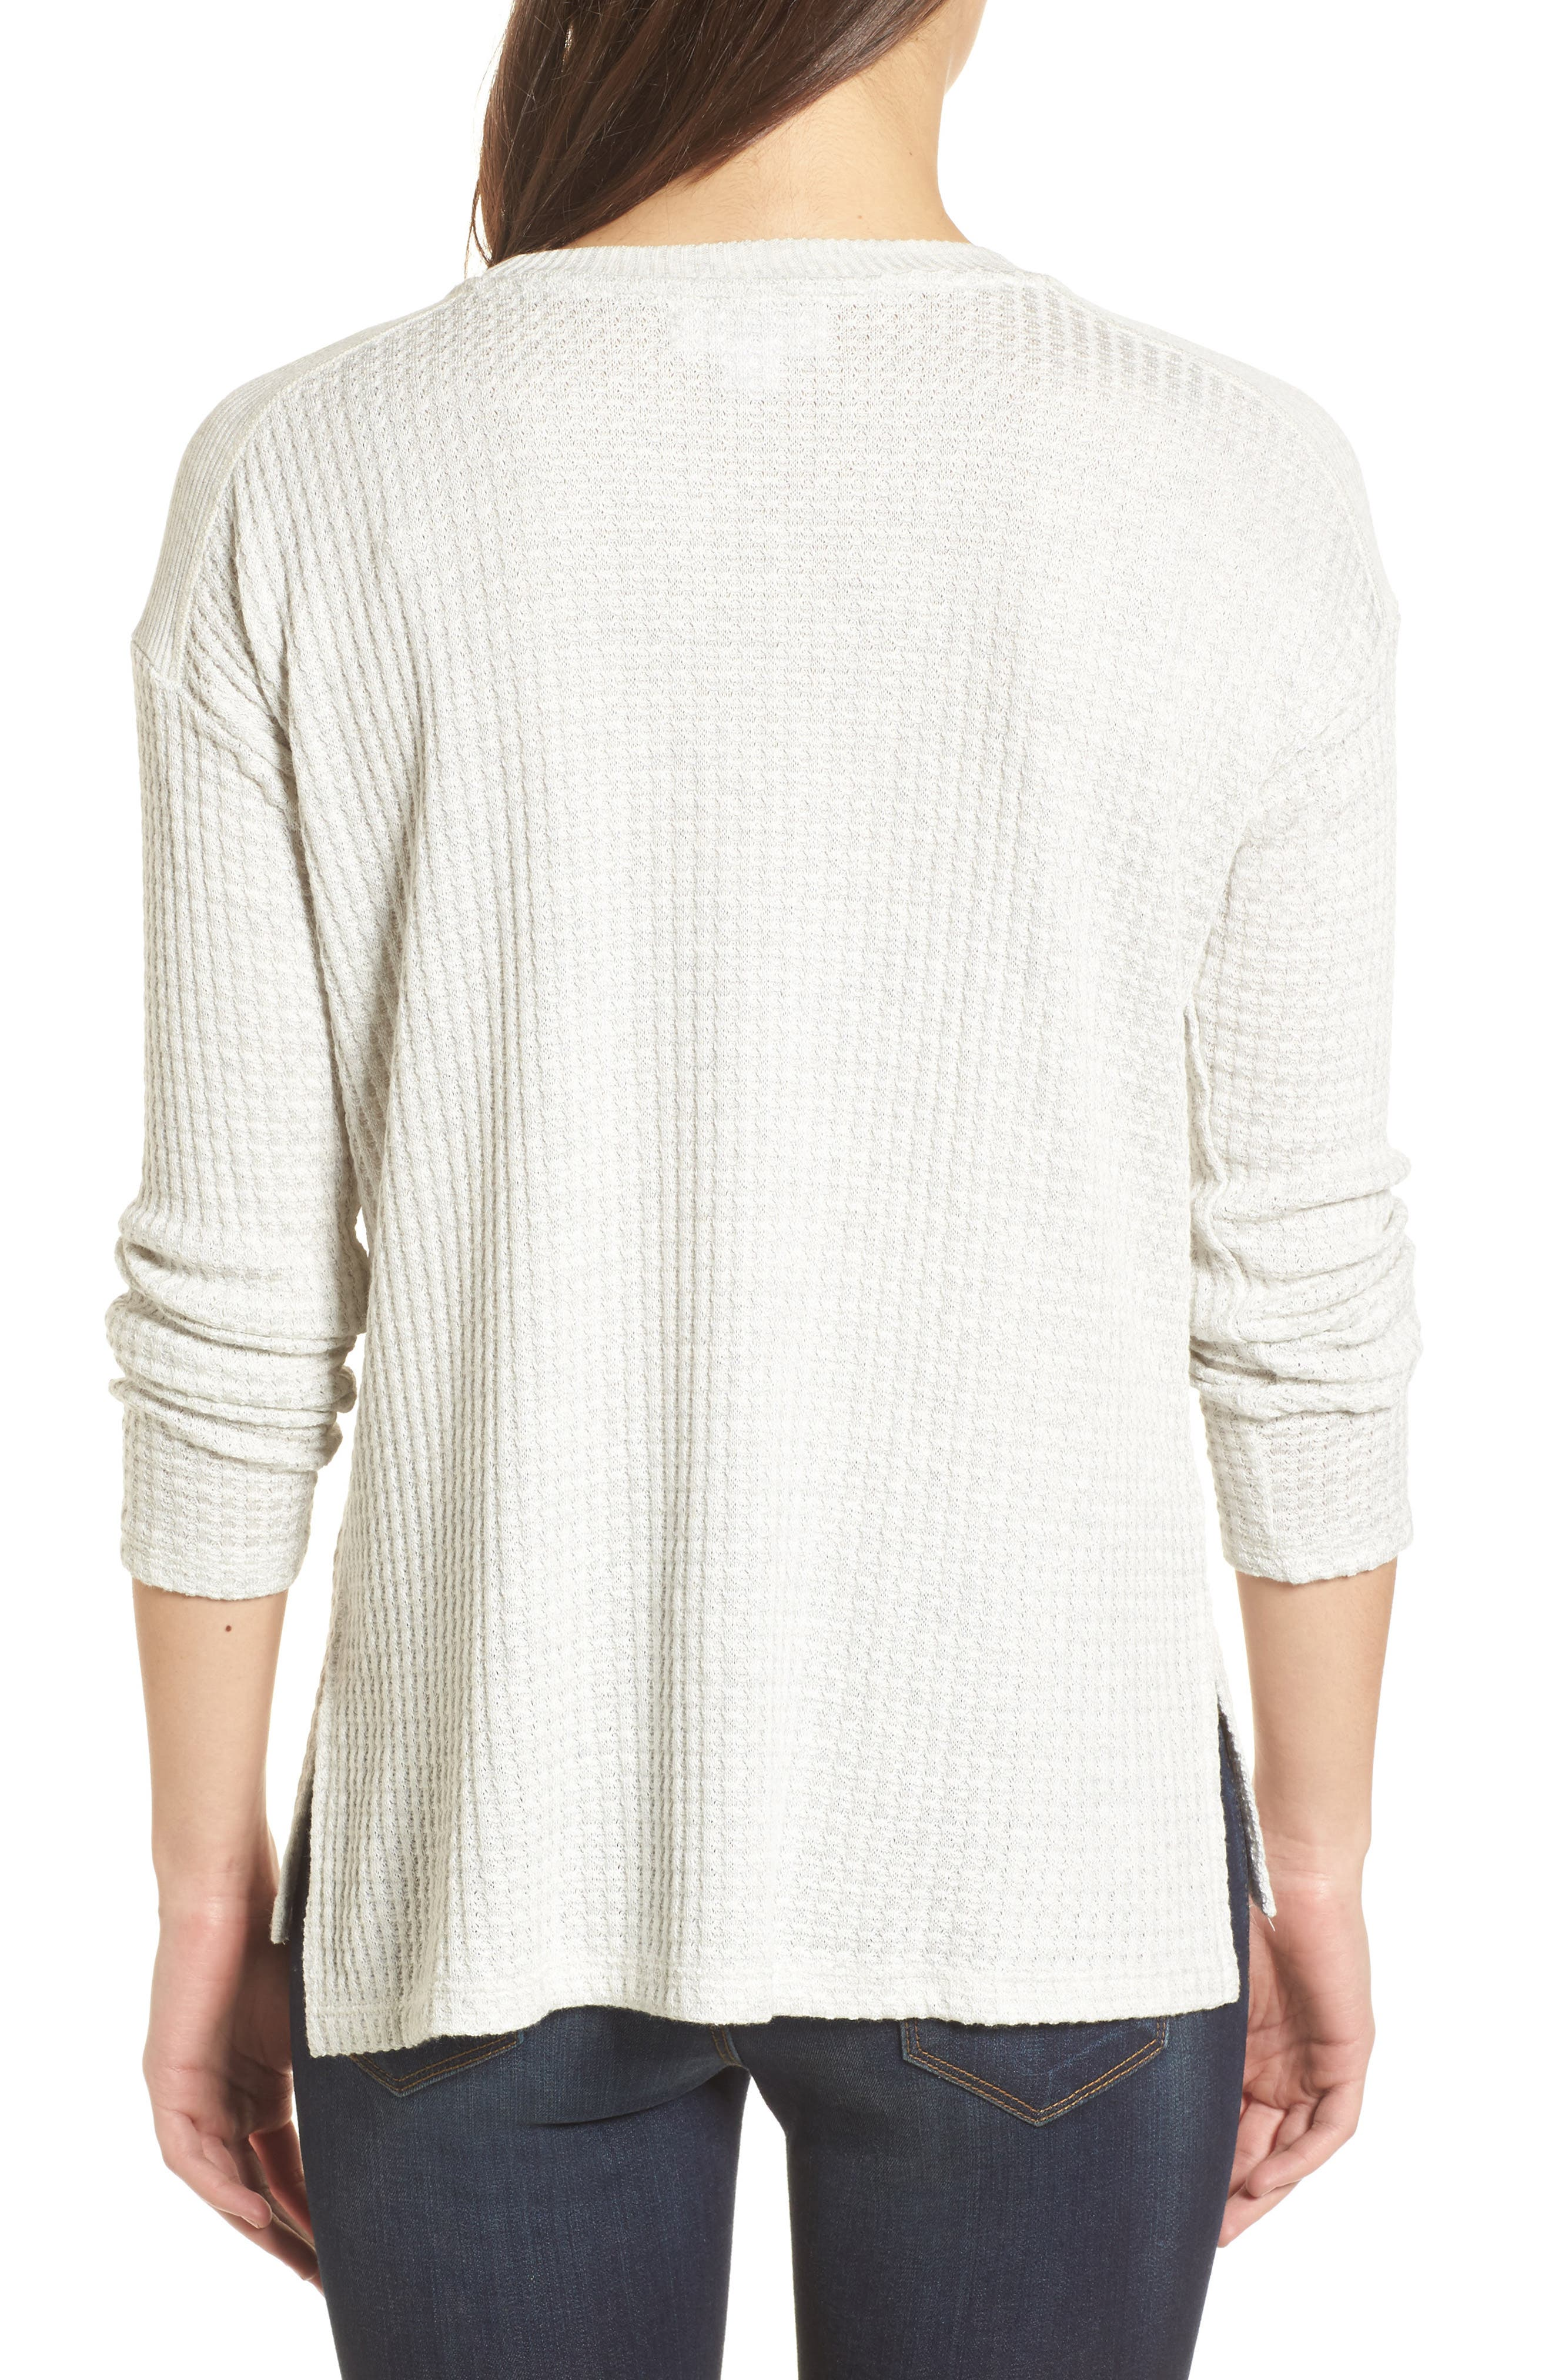 Thermal Knit Top,                             Alternate thumbnail 2, color,